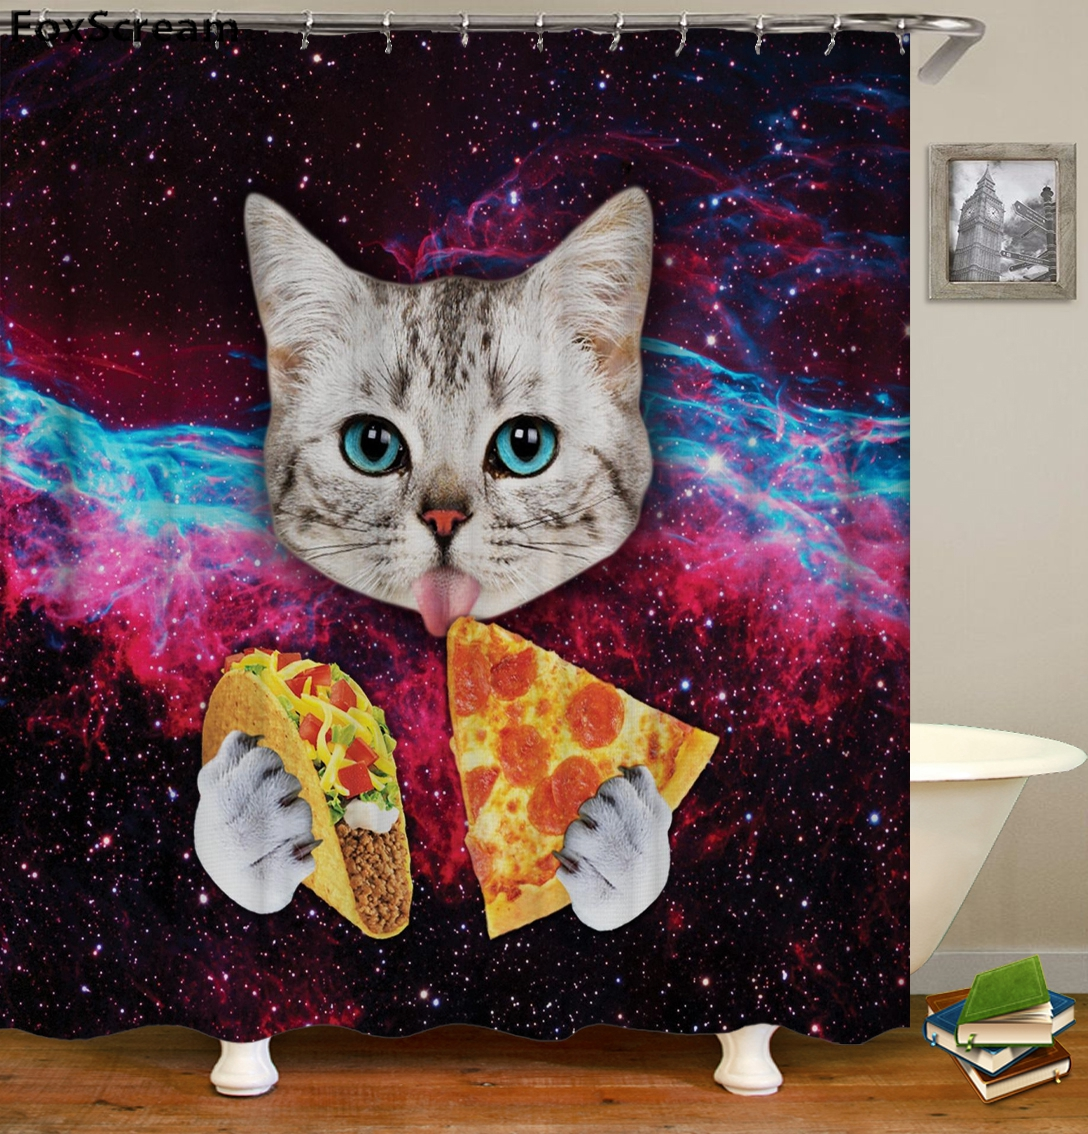 Cat Bath Shower Curtain Funny Star Space Waterproof Curtains Bathroom Fabric For In From Home